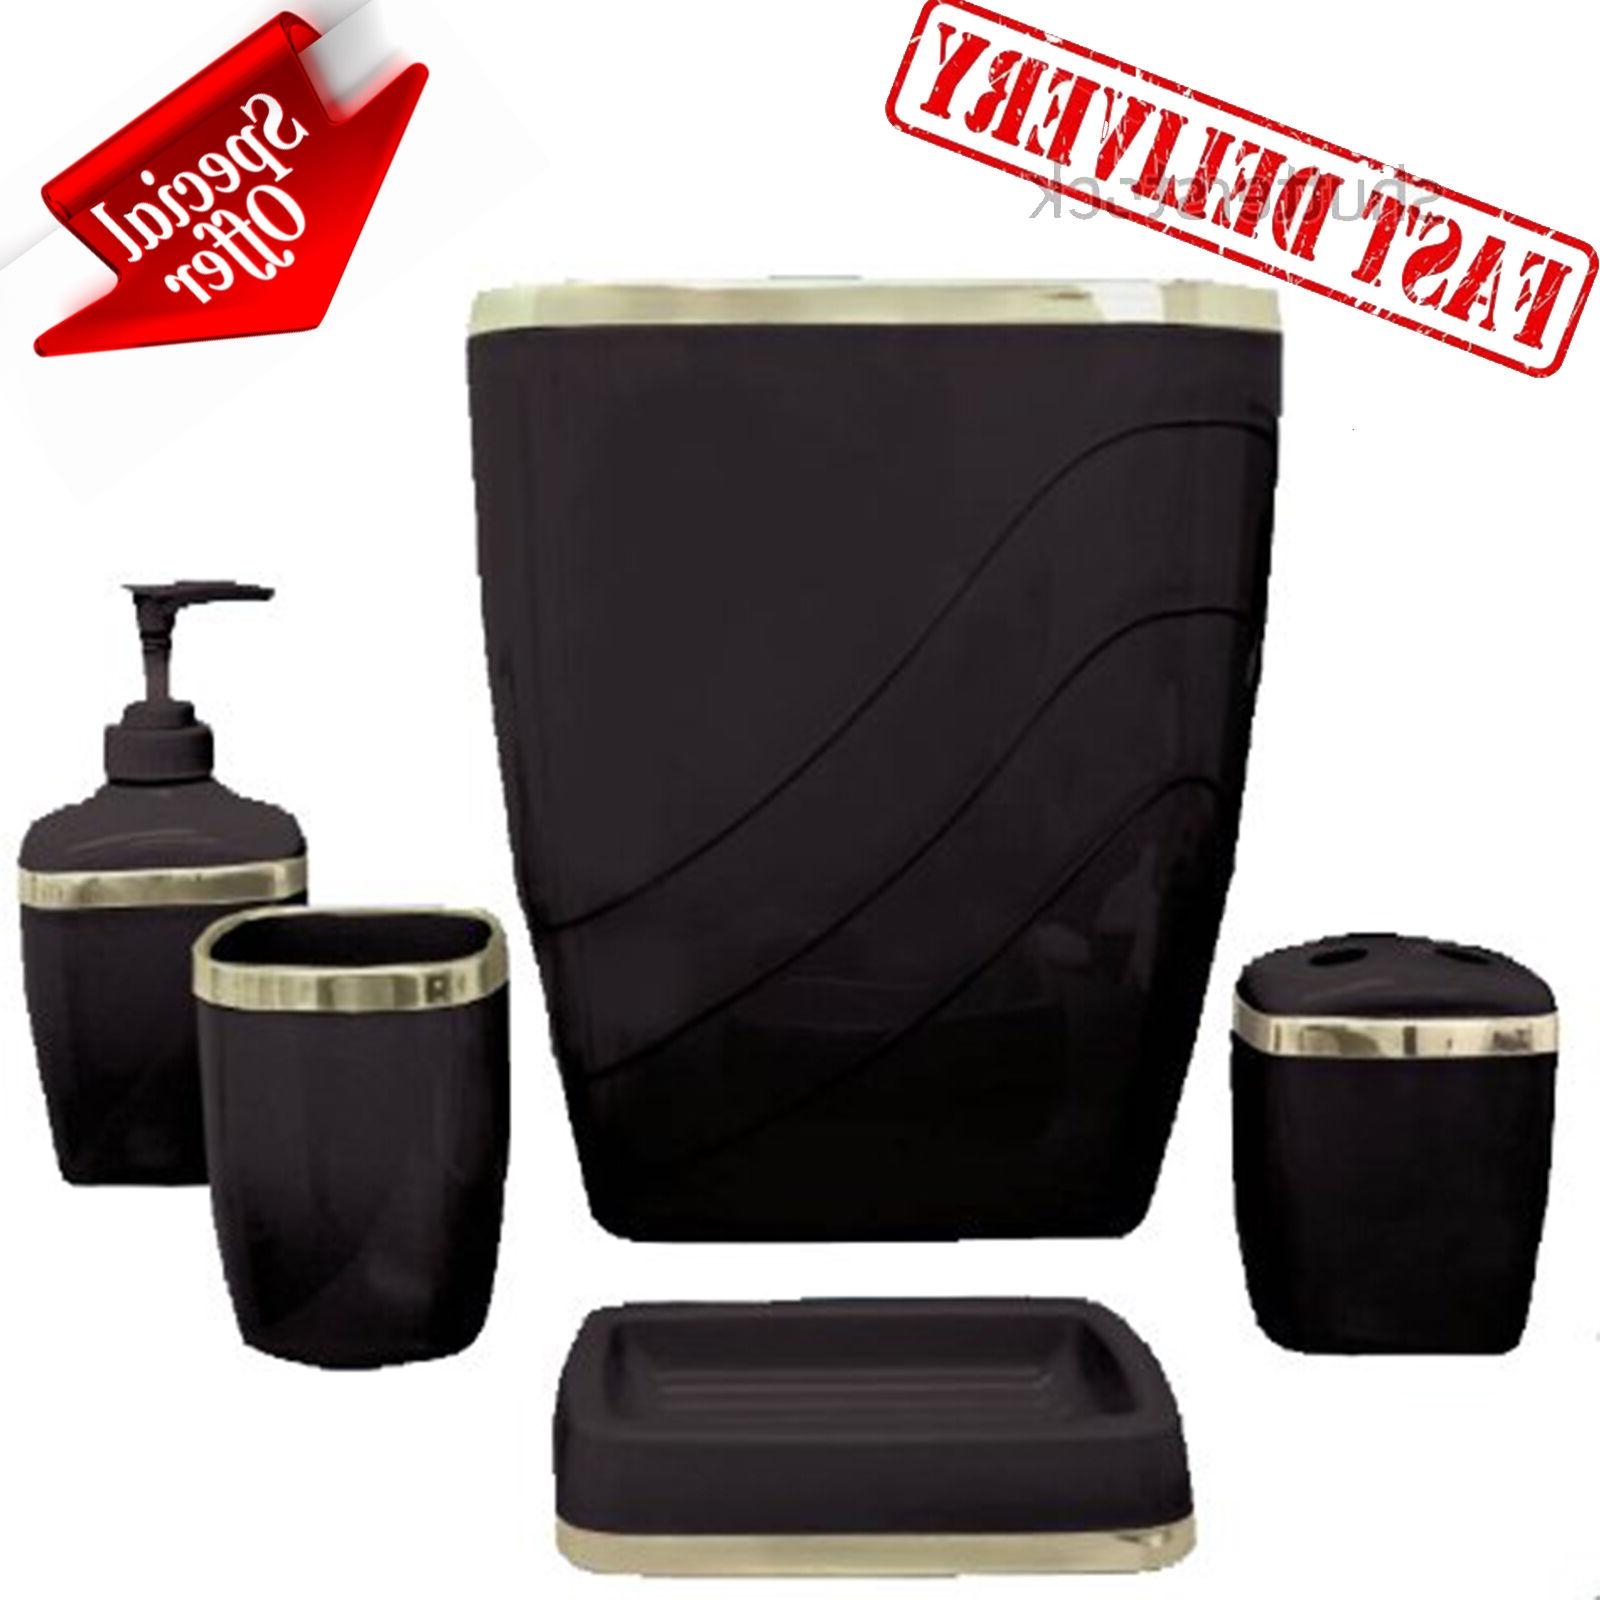 Bathroom Soap Dispenser Set Accessories Plastic Tumbler Bath